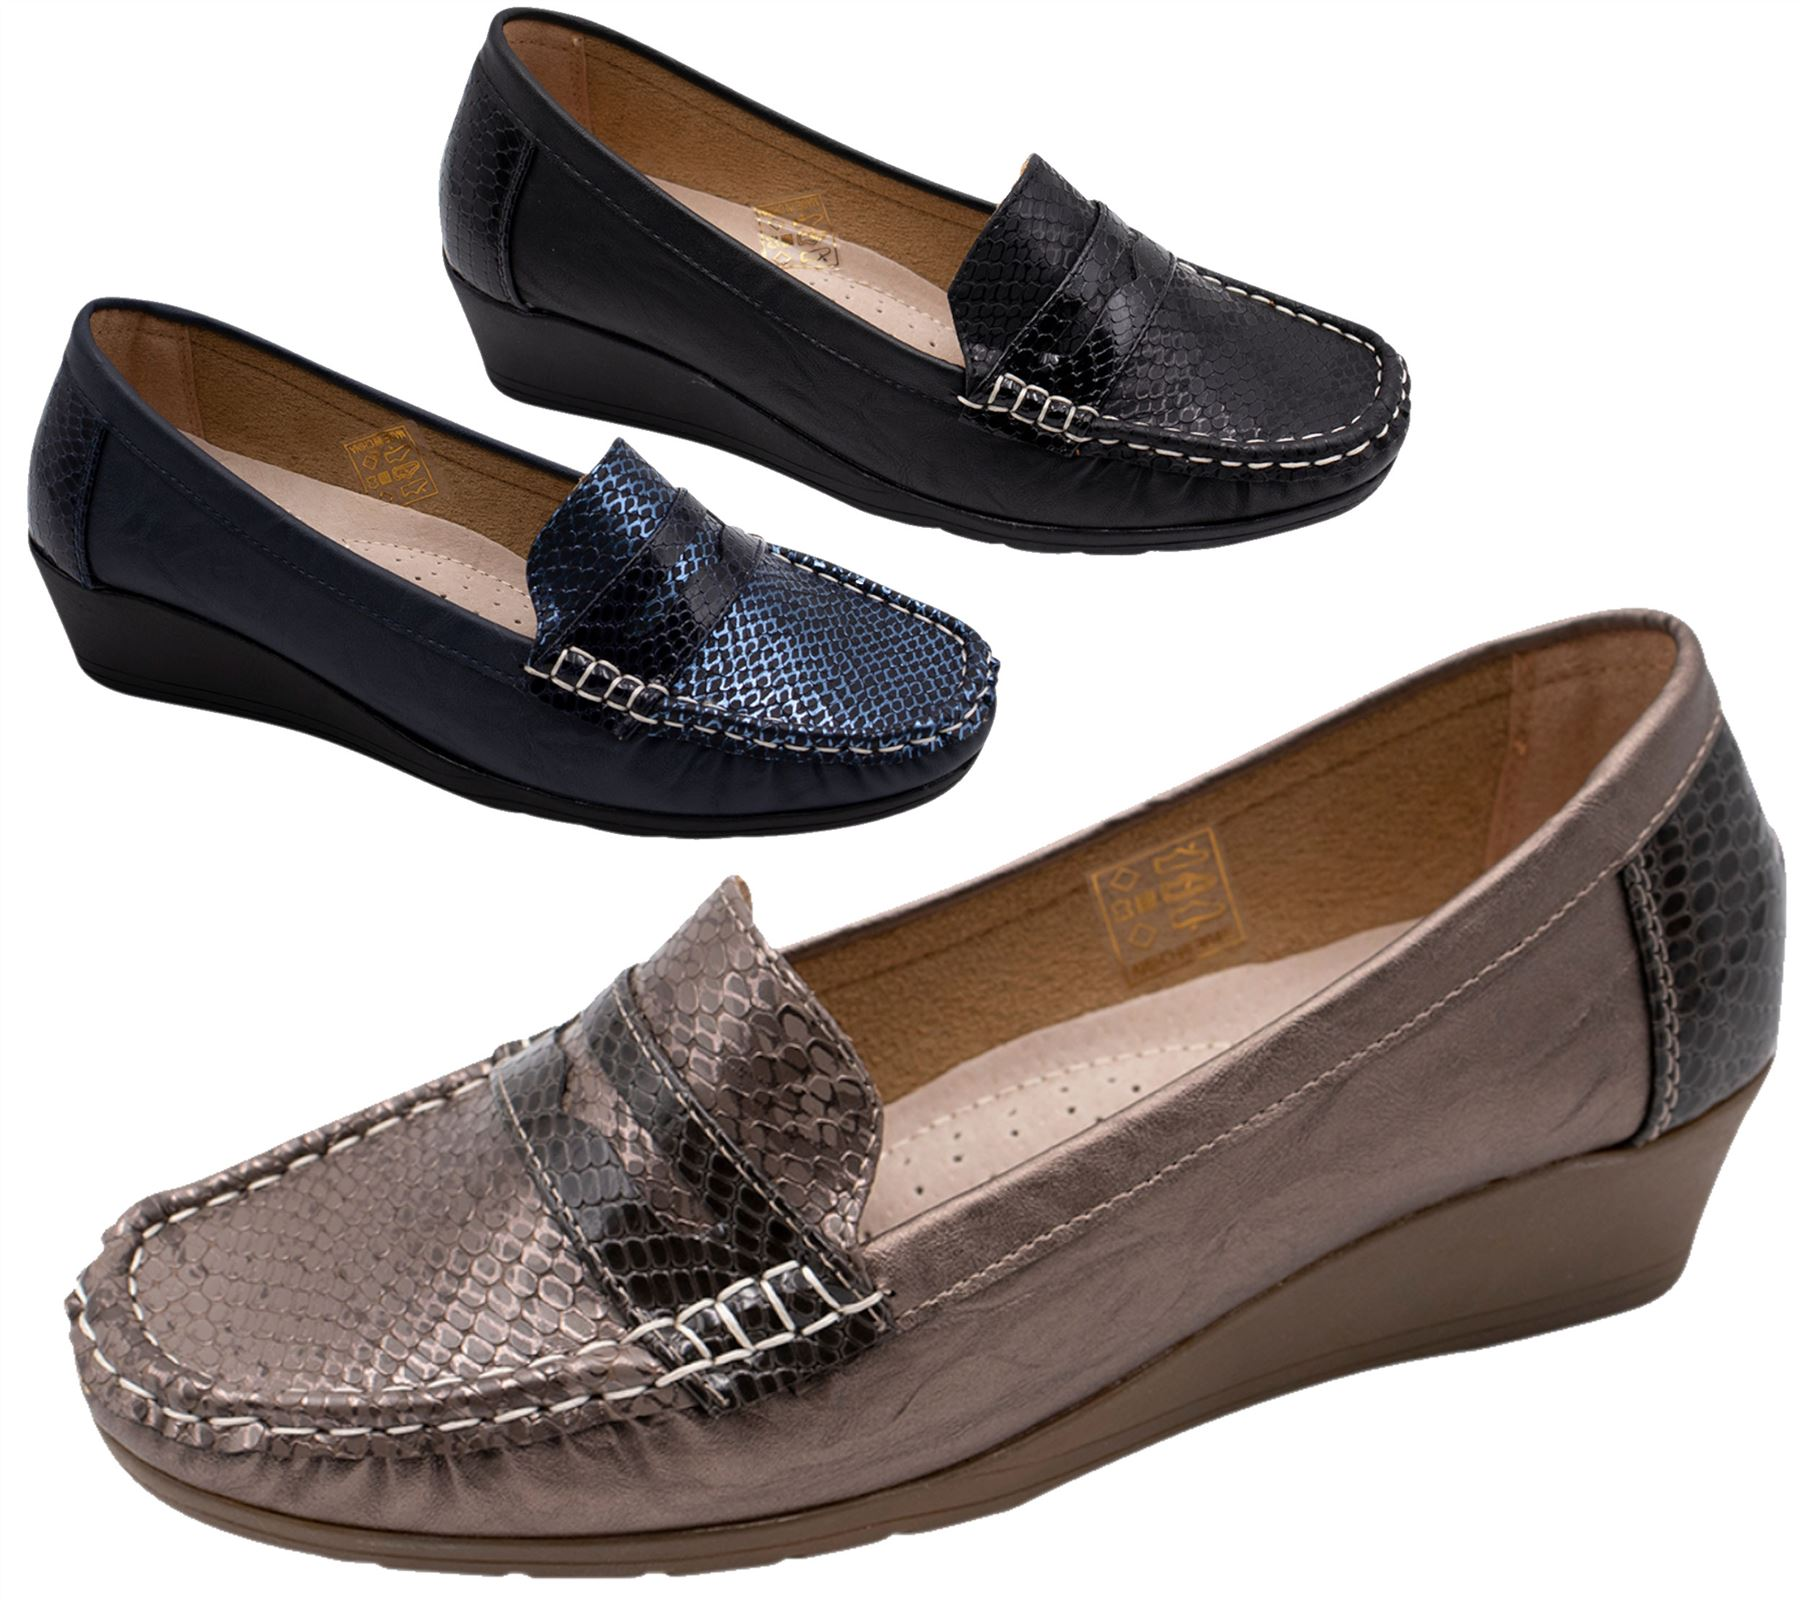 8d7ab57d01271b Details about Womens Wedge Heel Shoes Ladies Pumps Office Work Casual Slip  On Loafer Size